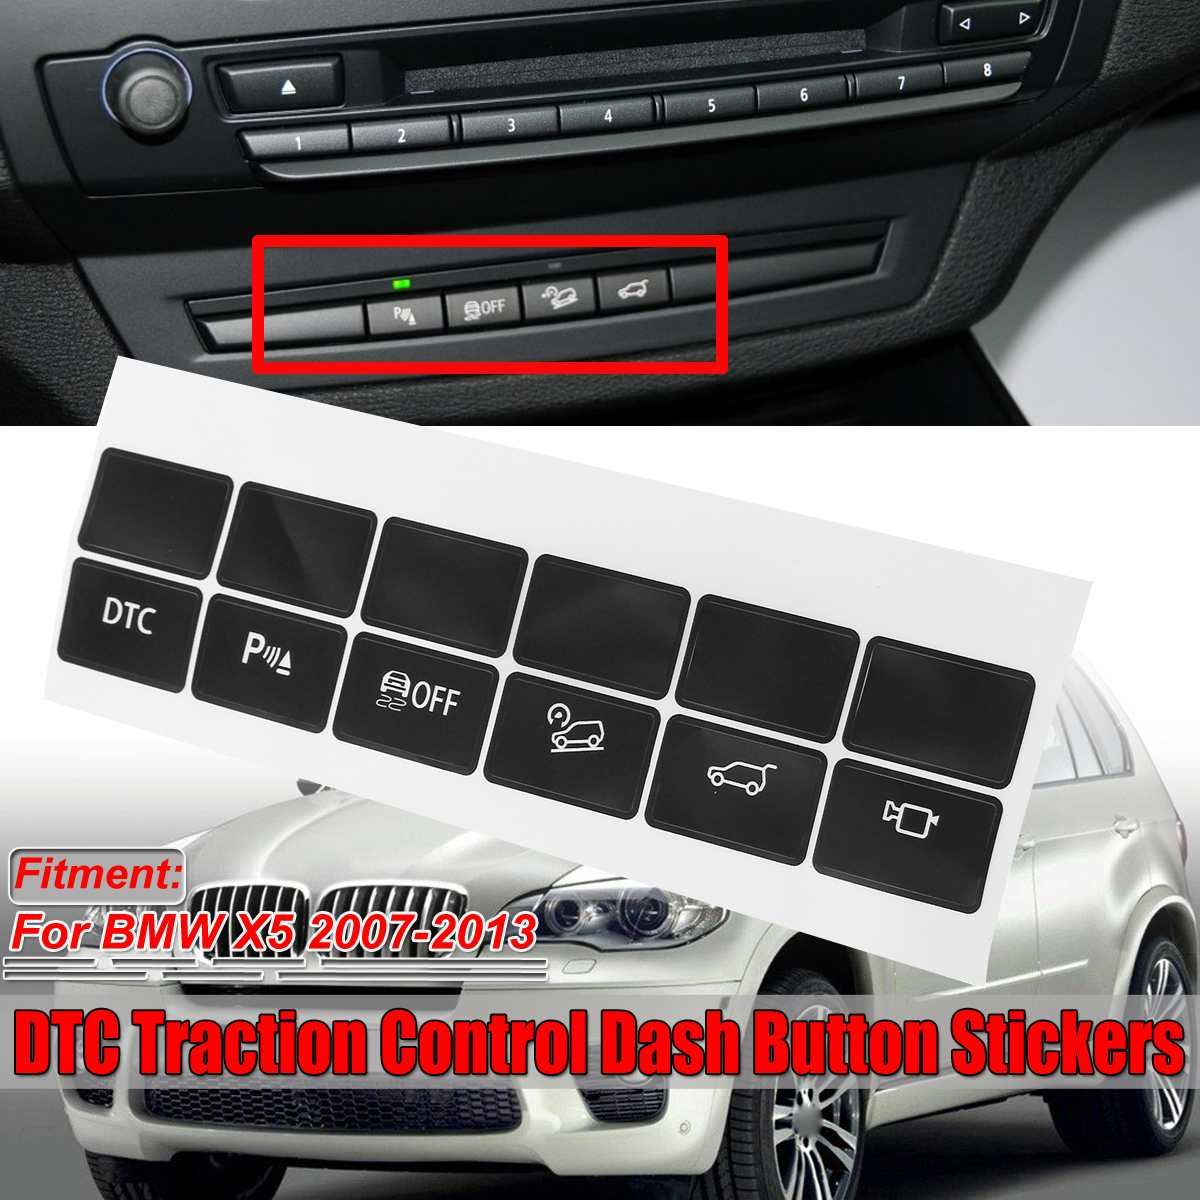 Replacement Car Dash Central Control Panel Button Repair Sticker DTC Traction Control Switch For BMW X5 2007-2013 Car Stickers